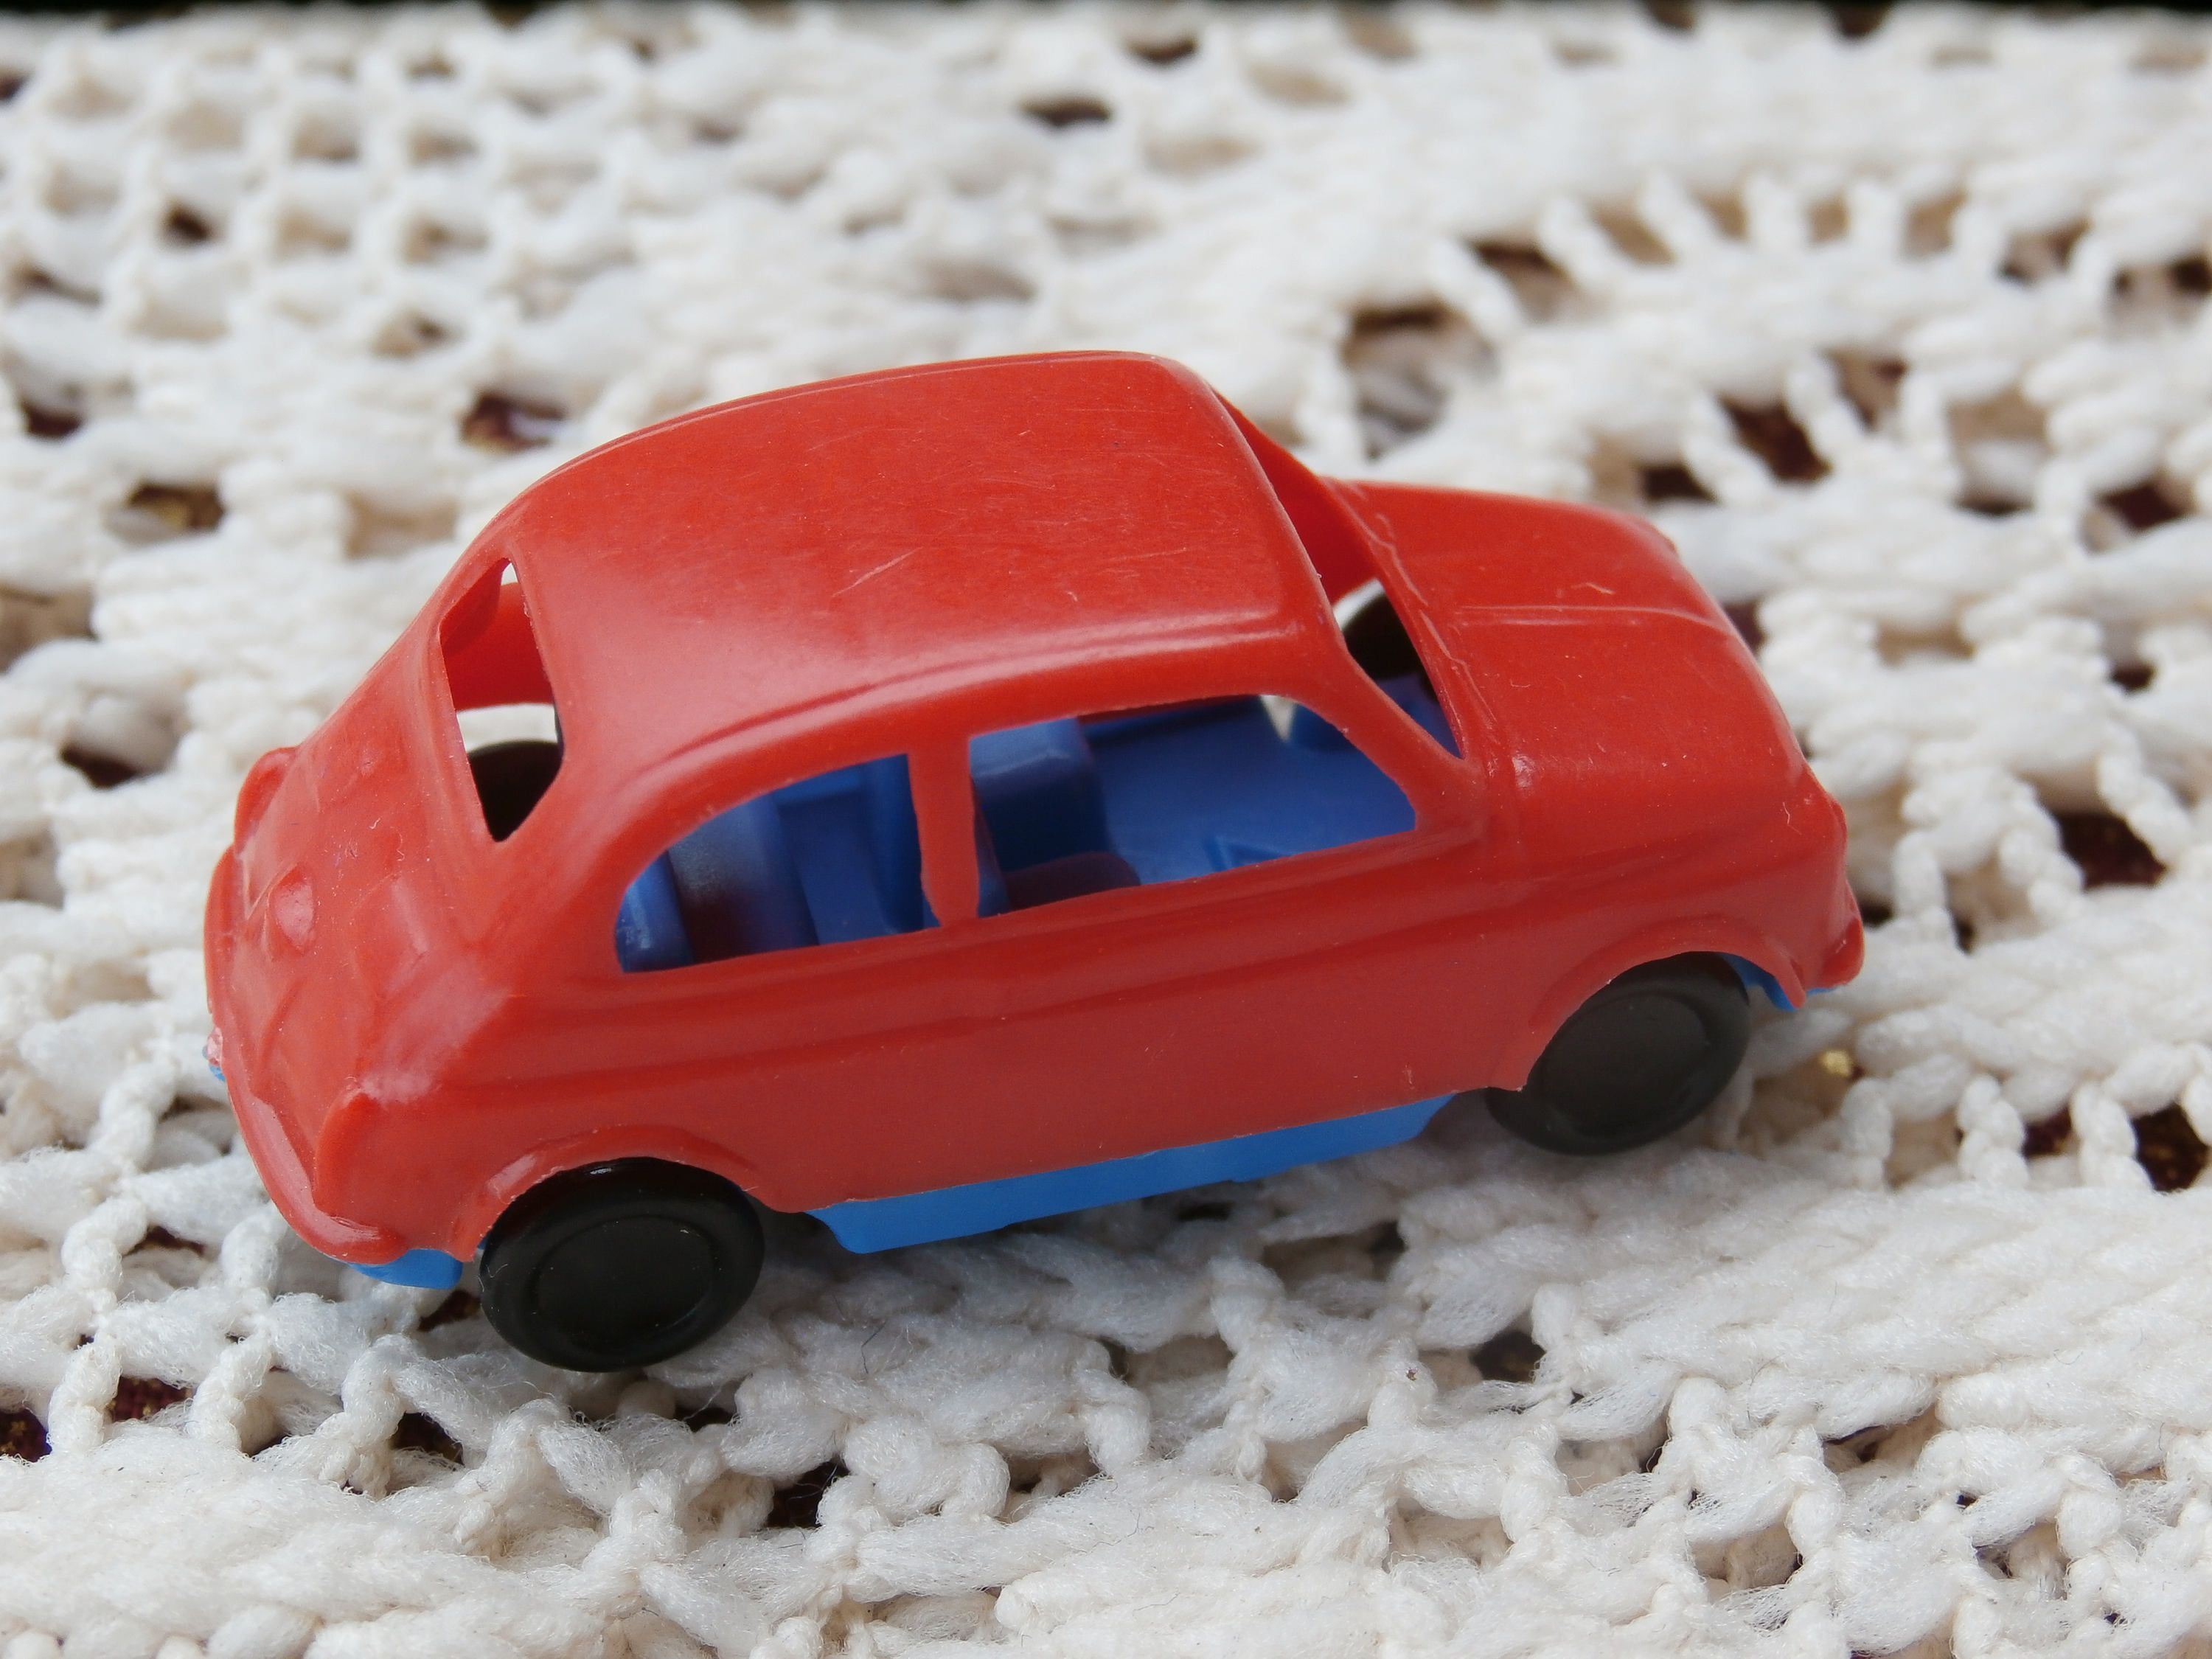 Pez Italy Toy Car 1970s Fiat 500 1 72 Ho Scale Red And Blue Plastic